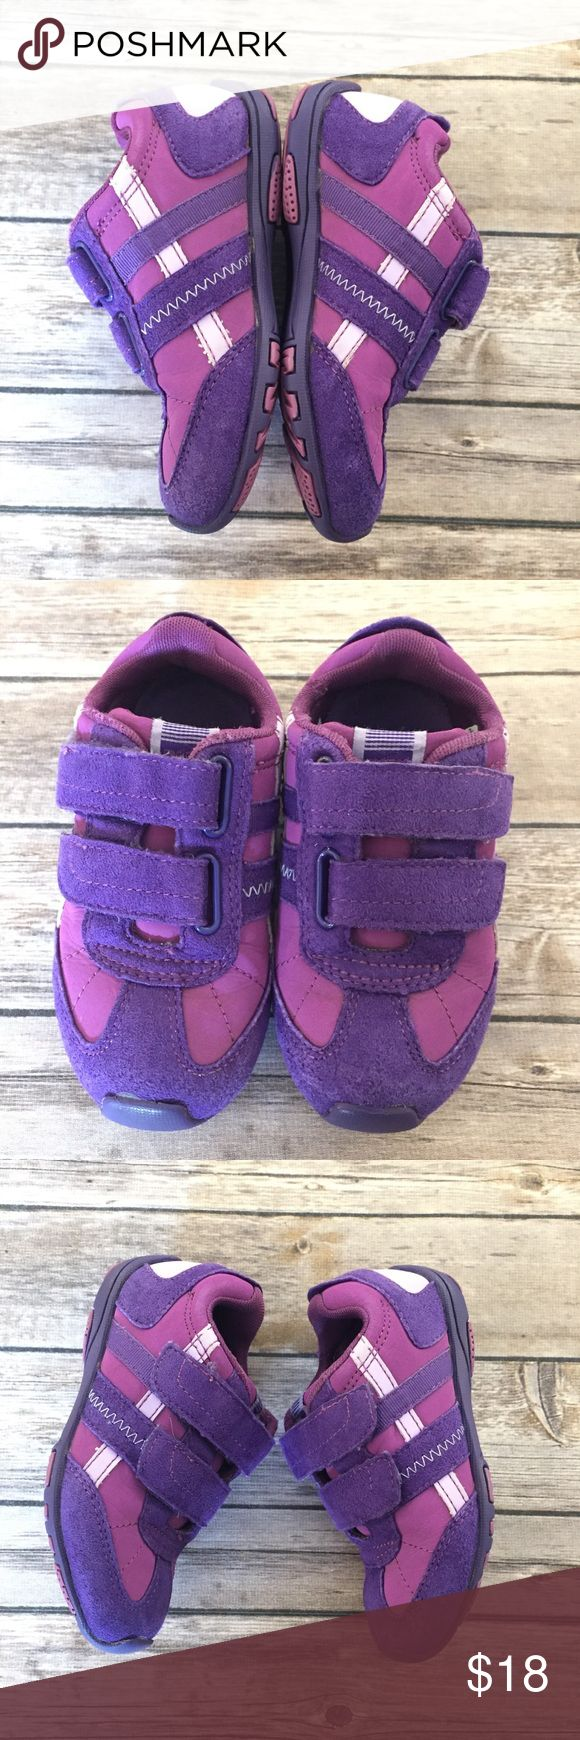 Pediped Purple Sneakers, Size 26/Toddler 9 Pediped Purple Sneakers, Size 26/Toddler 9, purple tennis shoes with Velcro closures.  Great basic, GUC for typical wear, but no major flaws.  Please see all pics. pediped Shoes Sneakers